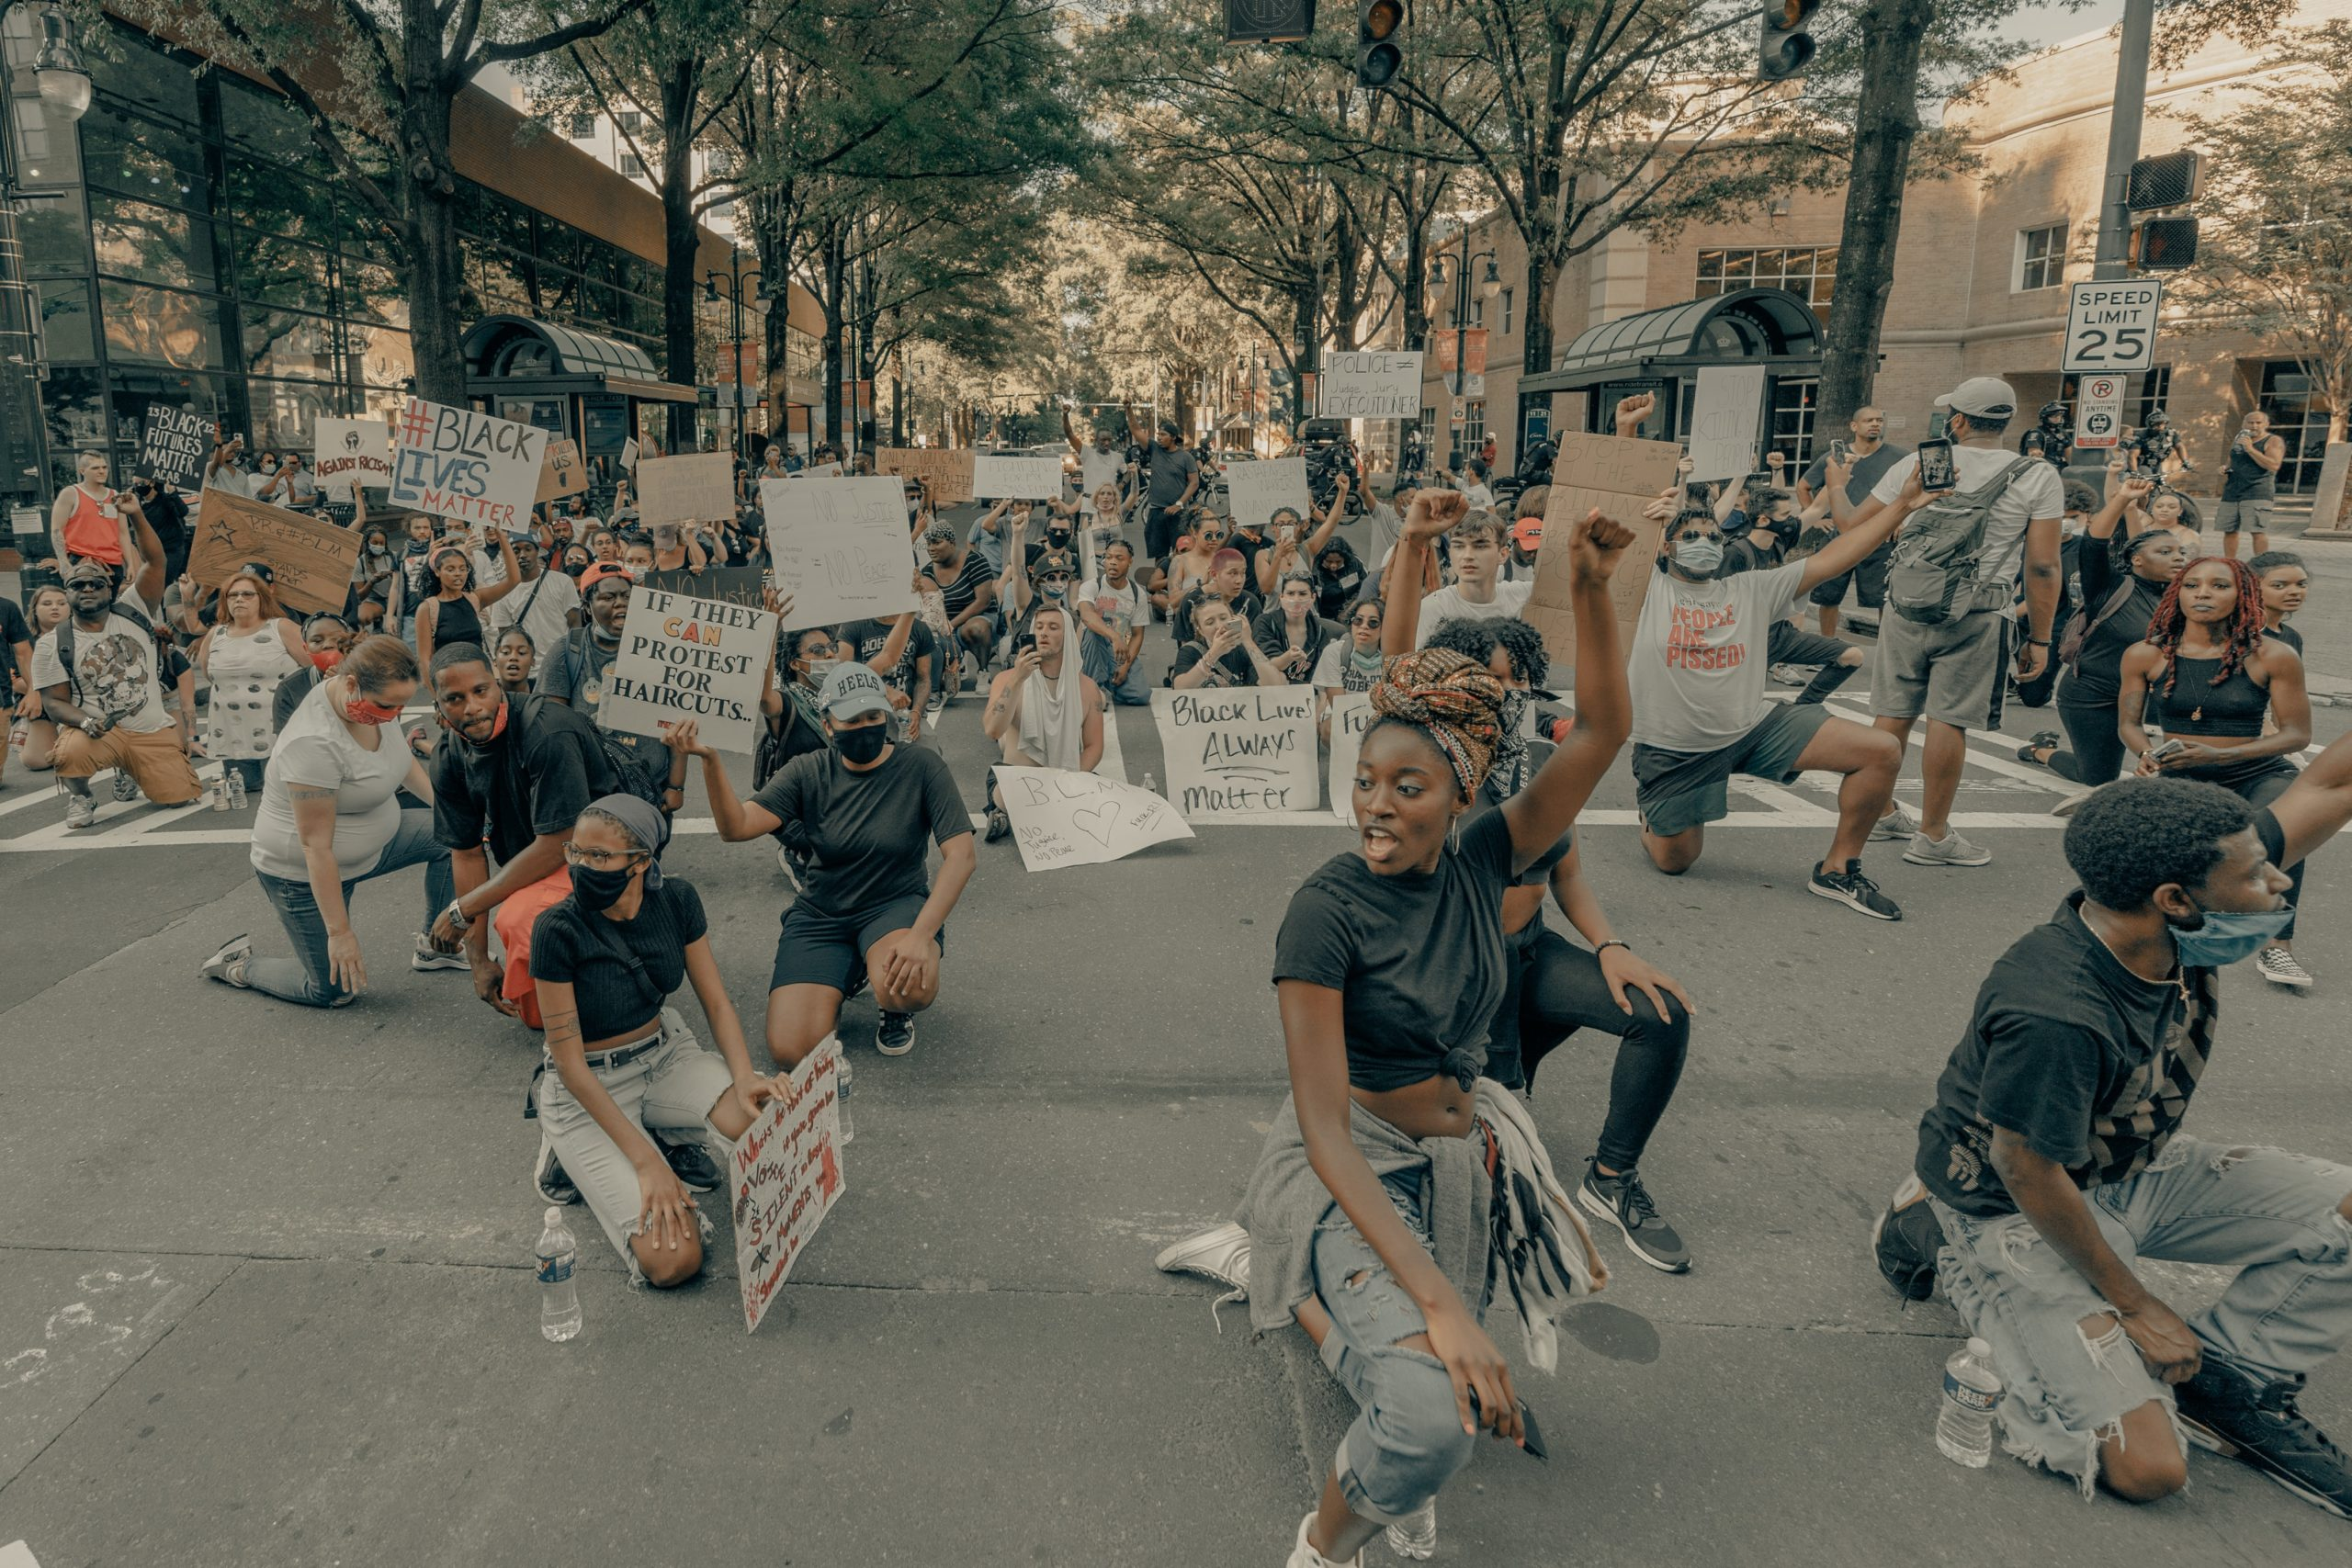 Photo from the George Floyd protests in Uptown Charlotte: Many people of color wearing black T-shirts and tattered jeans are kneeling on one knee in a public intersection holding signs & their fists raised. Behind them are hundreds of people sitting in the street with their own protest signs.